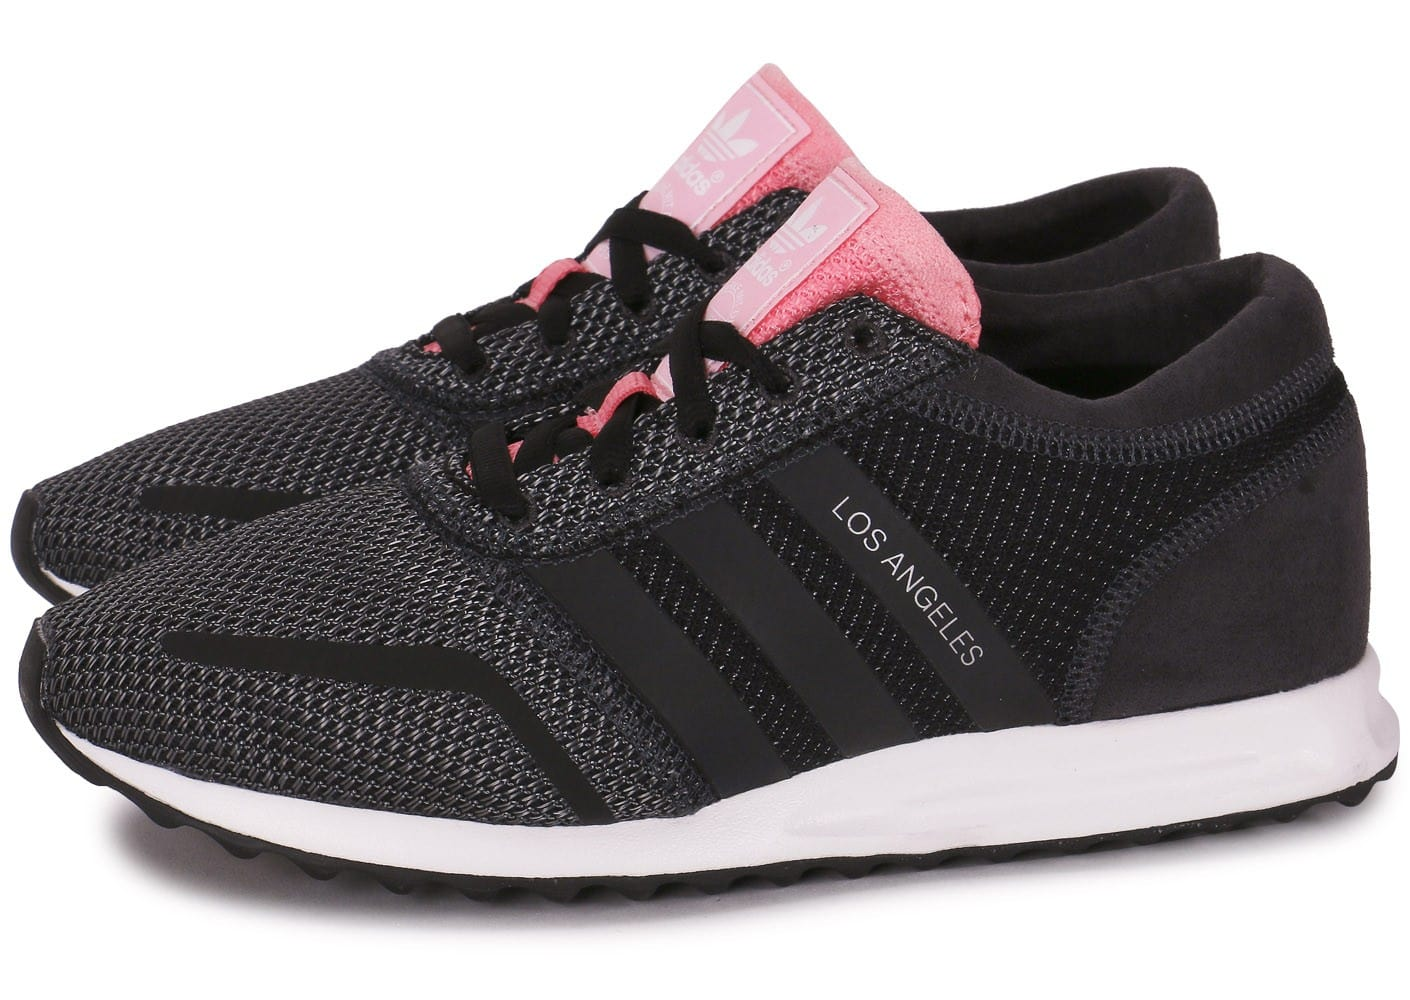 Chaussures Noire Los Adidas Rose Et Angeles Chausport EDH92I